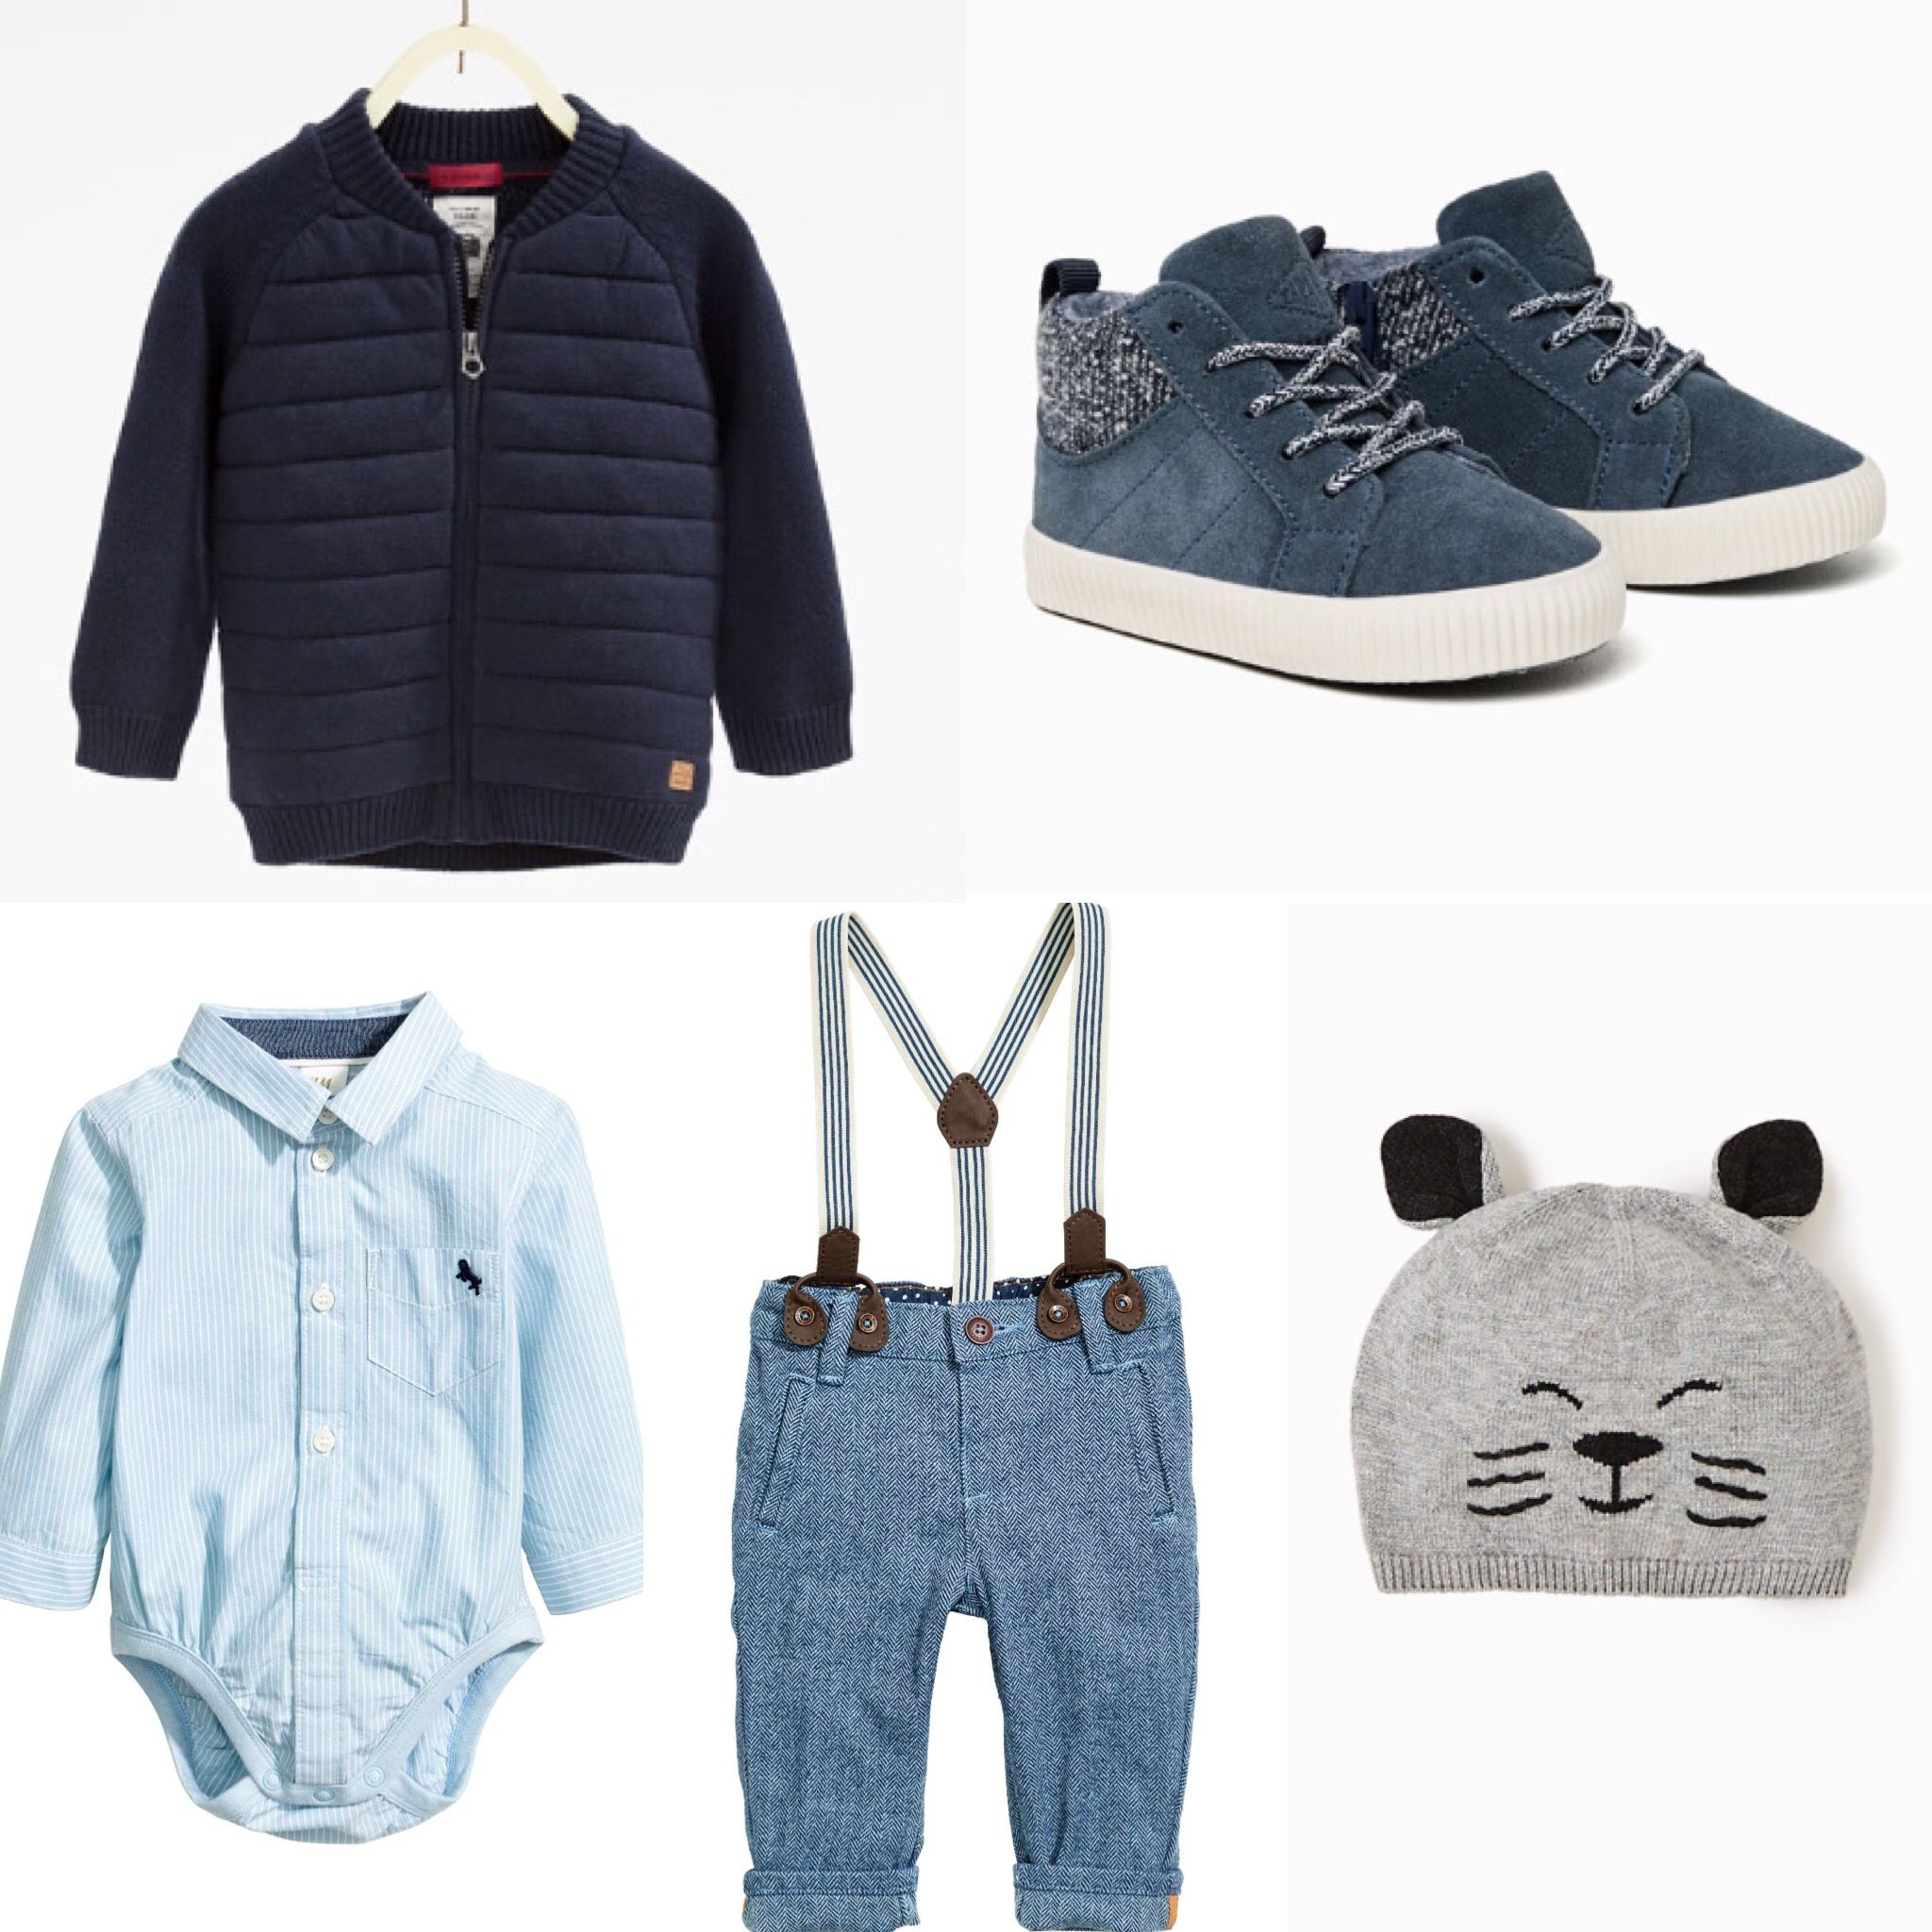 Baby boy outfit idea. H&M trousers and body. Zara jacket, sneakers and hat. 2016 fall collection.